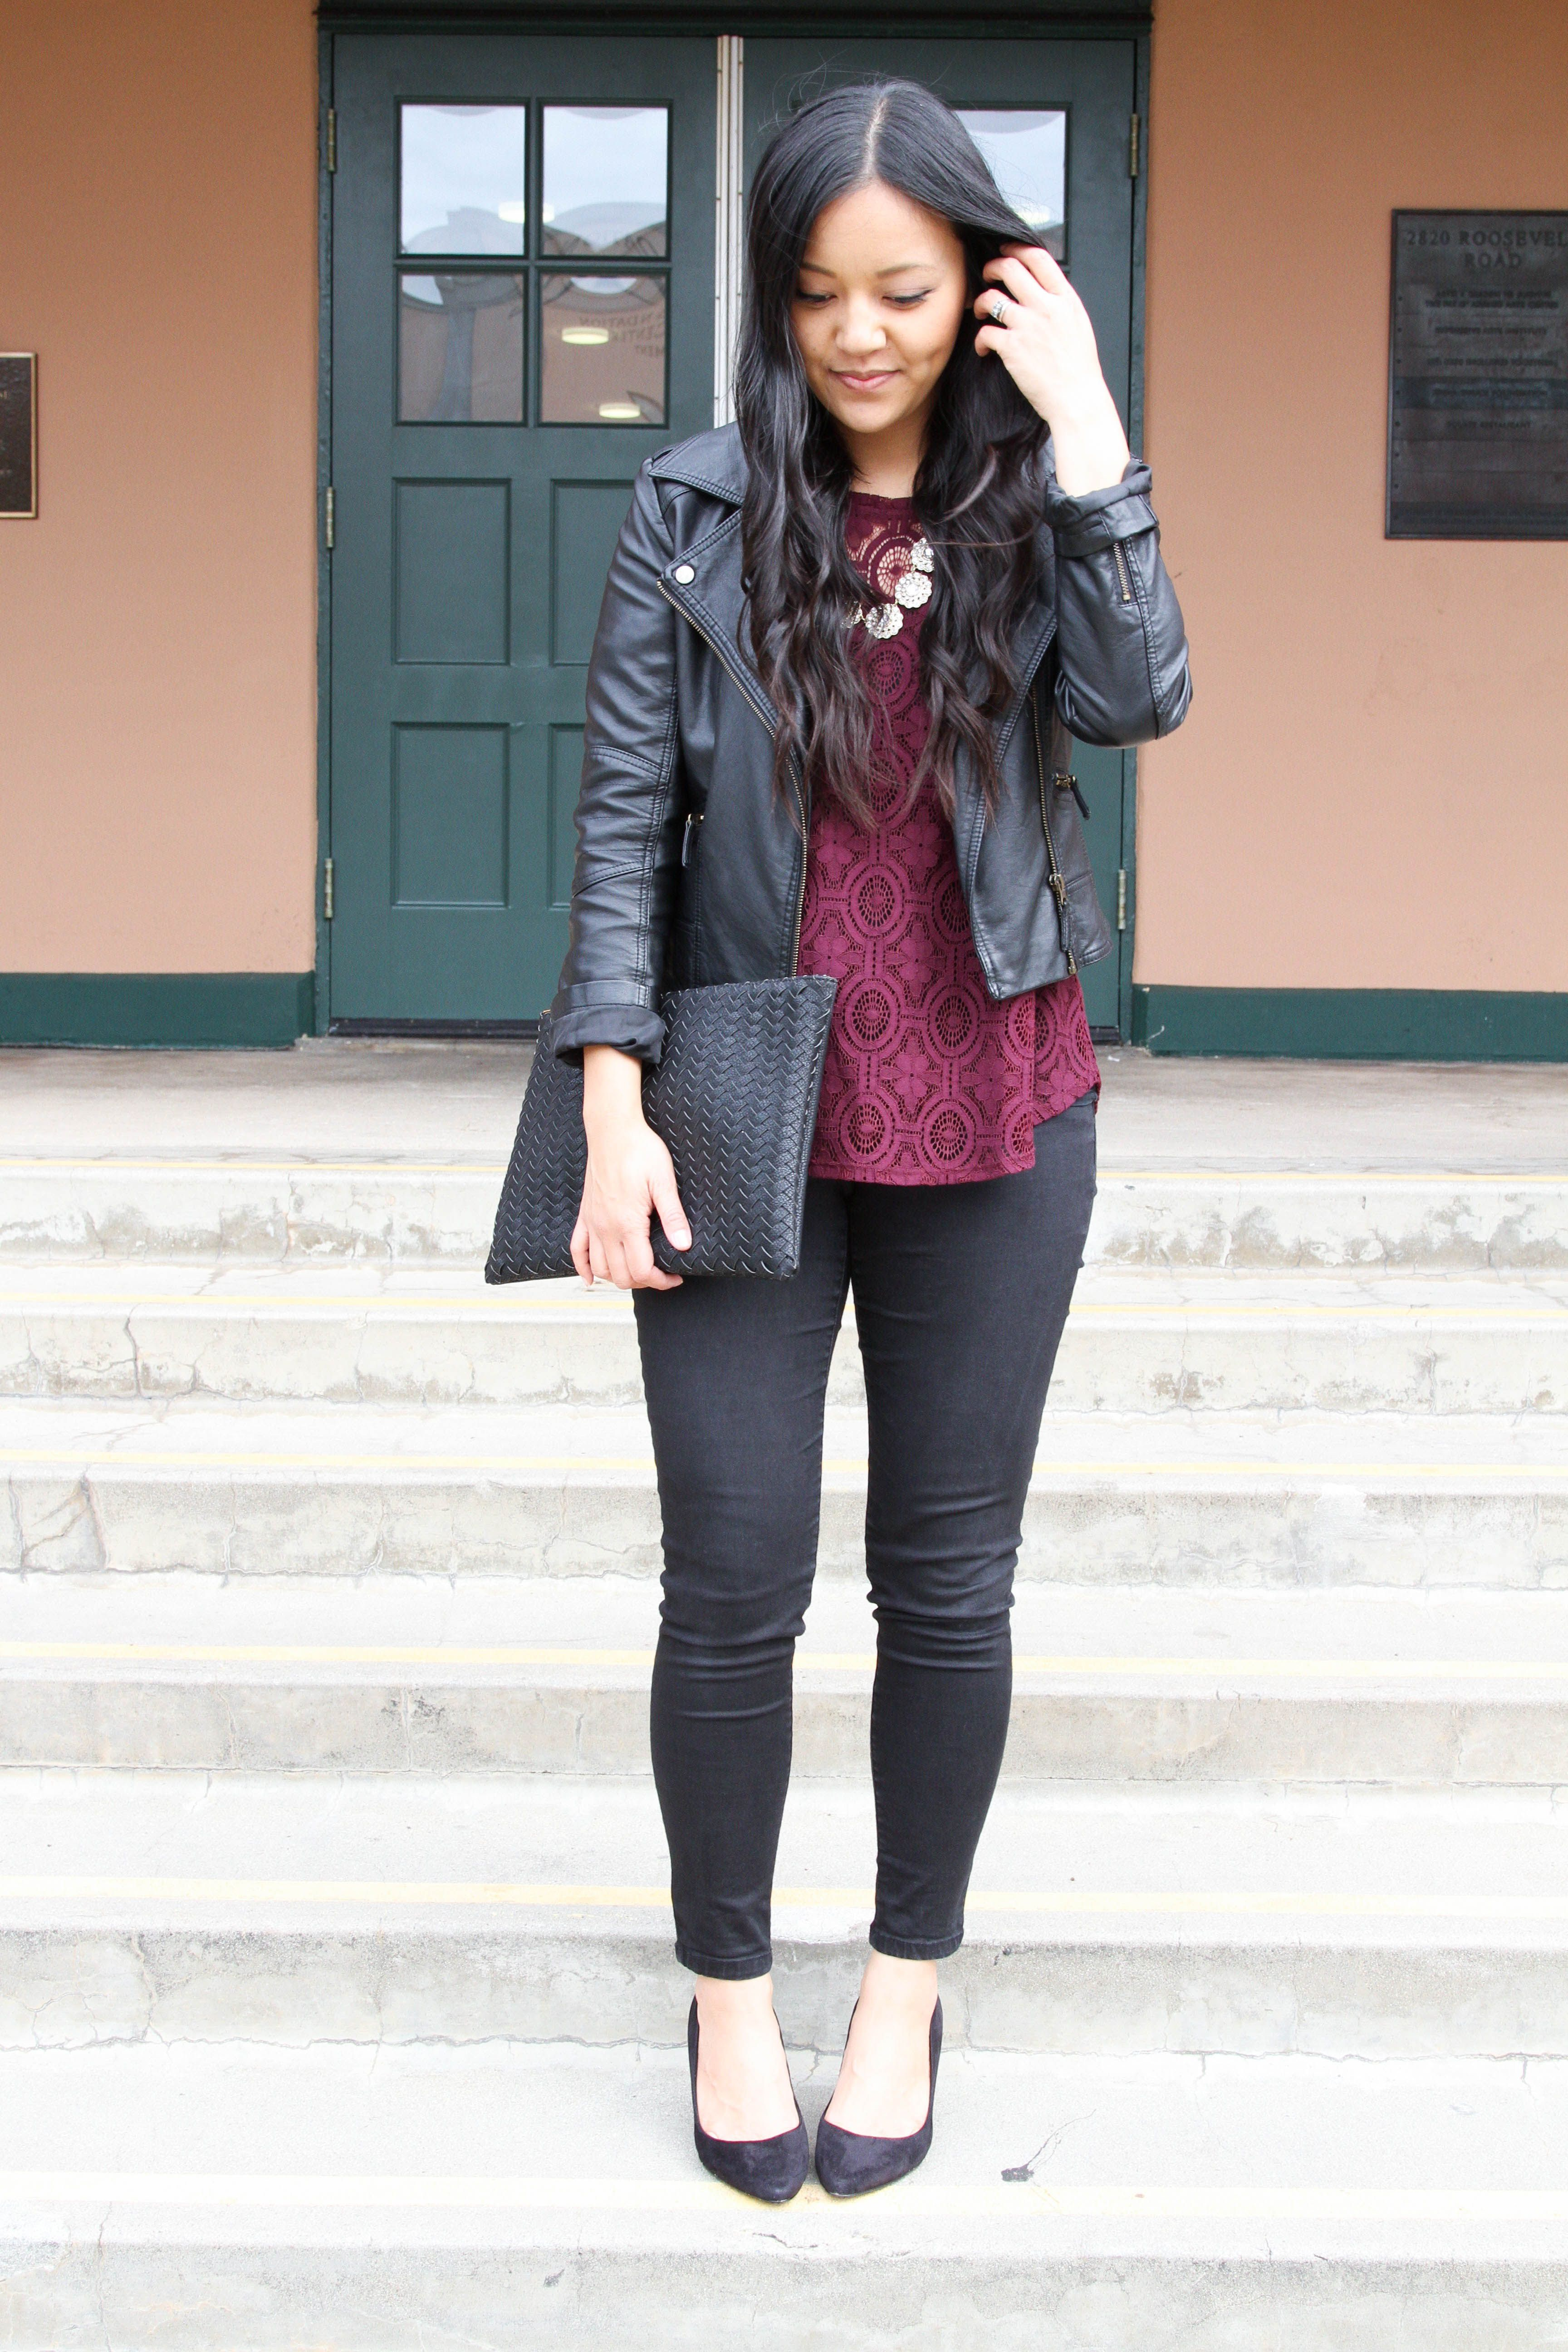 d5462d04257 Dressy Casual Holiday Outfit Ideas  Black Moto Jacket + Lace Top + Black  Pumps + Statement Necklace + Clutch